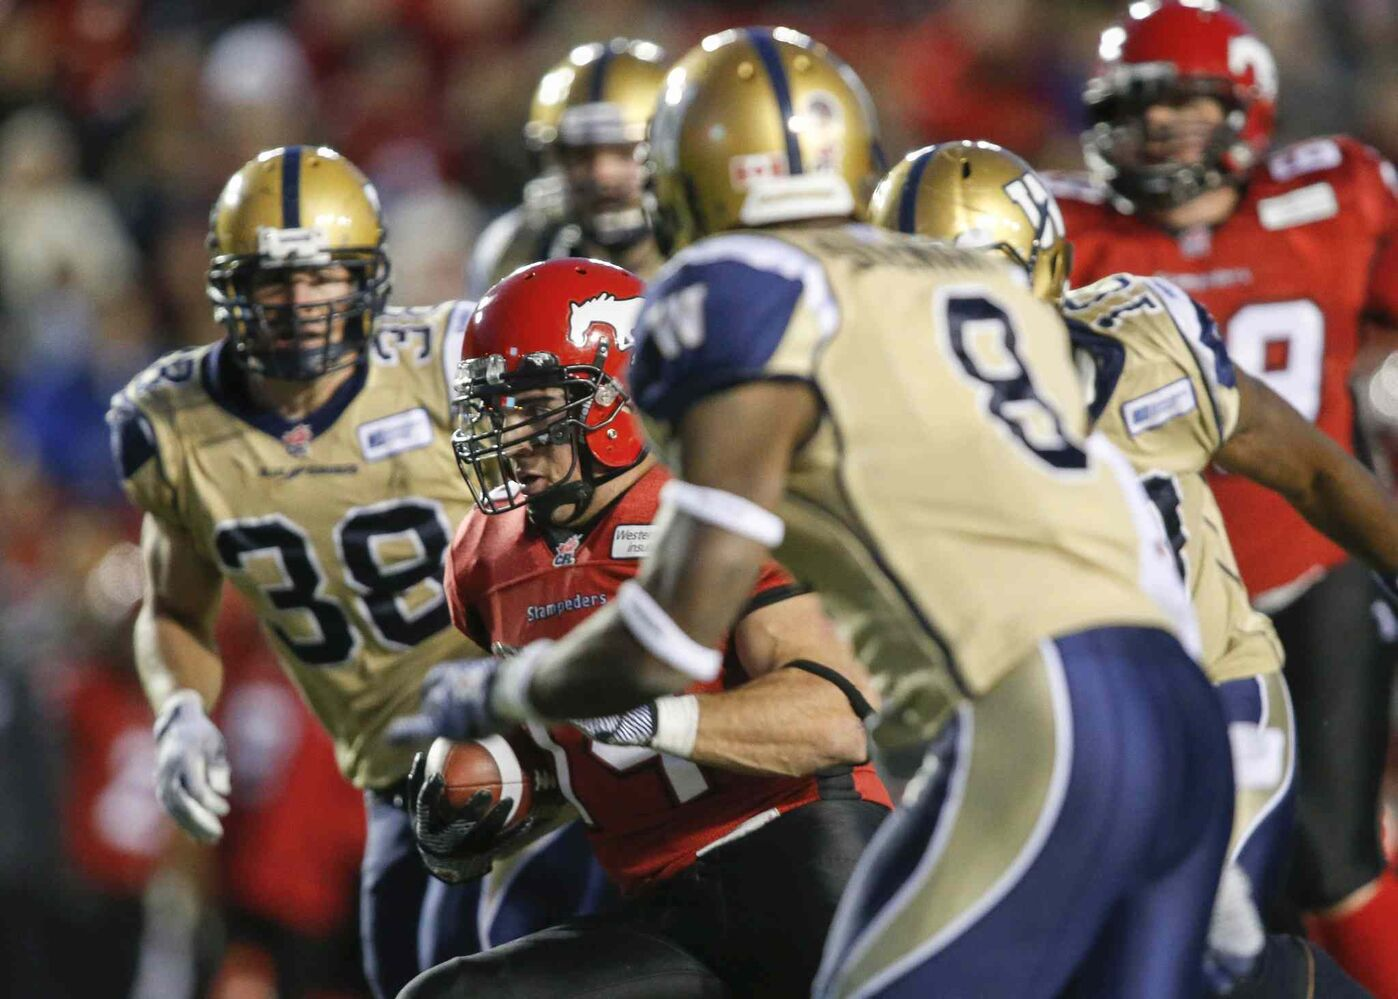 Winnipeg Blue Bombers' Ian Wild (left) and Brandon Stewart (right) close in on Calgary Stampeders' Matt Walter (centre) during the second half. (Jeff McIntosh / The Canadian Press)